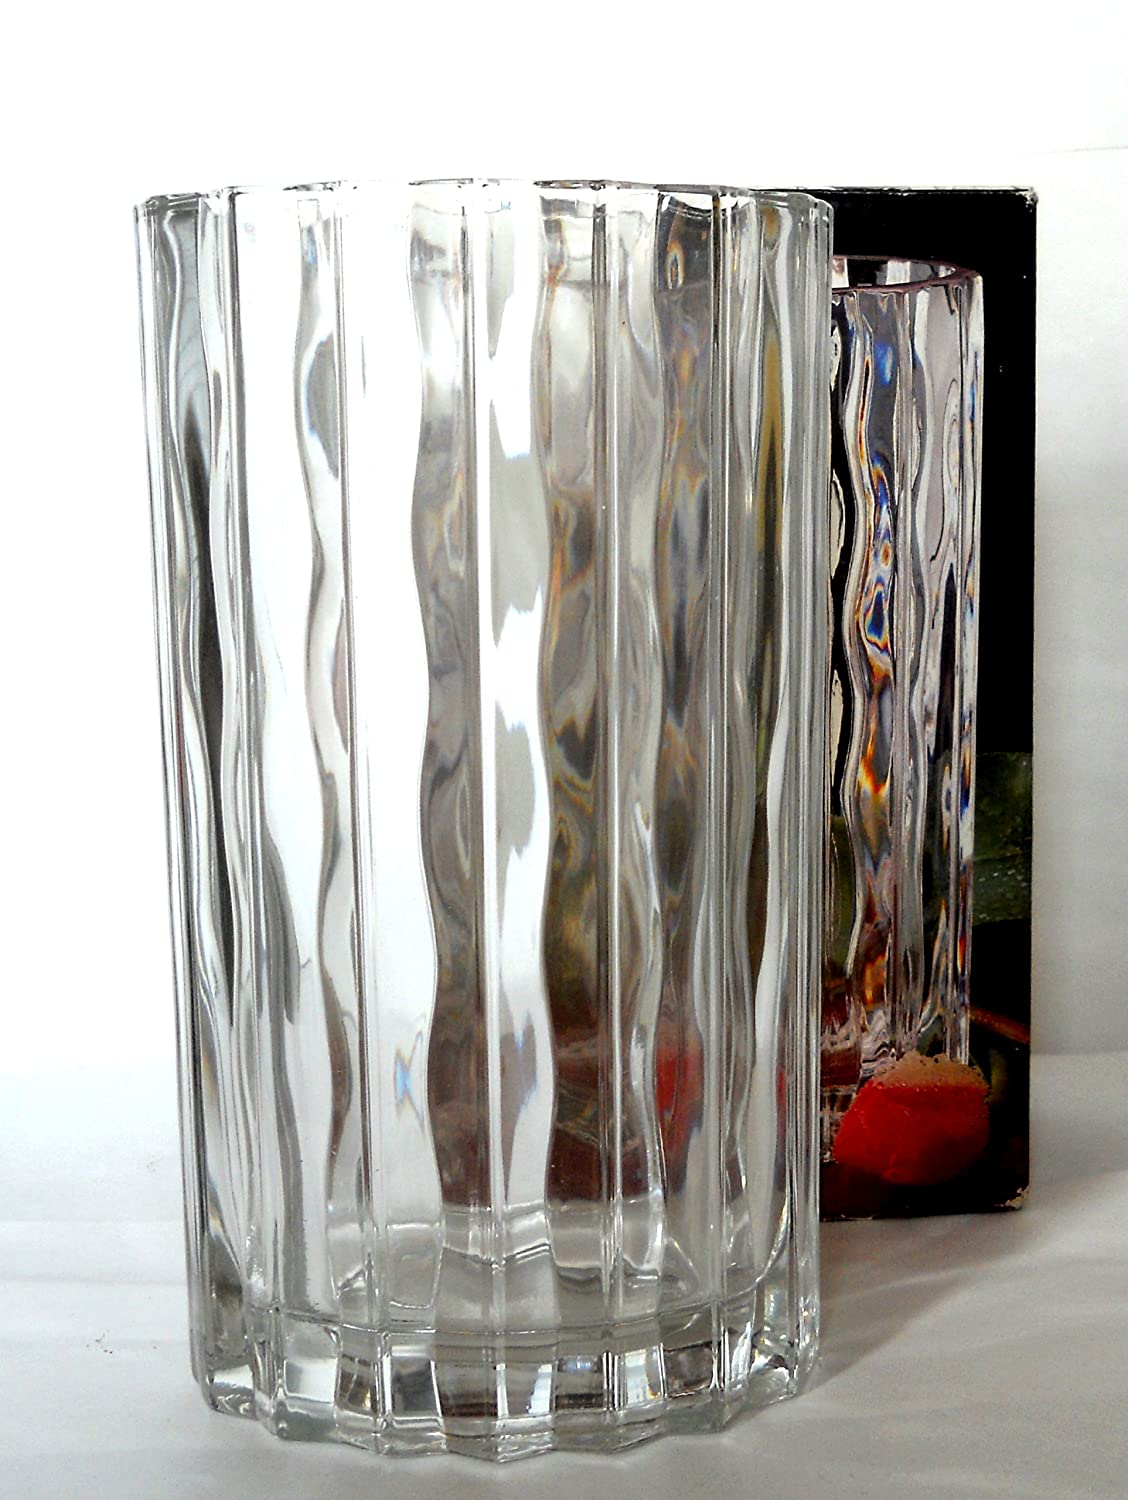 Amazon studio nova seca 85 vase clear waves made in japan amazon studio nova seca 85 vase clear waves made in japan home kitchen reviewsmspy